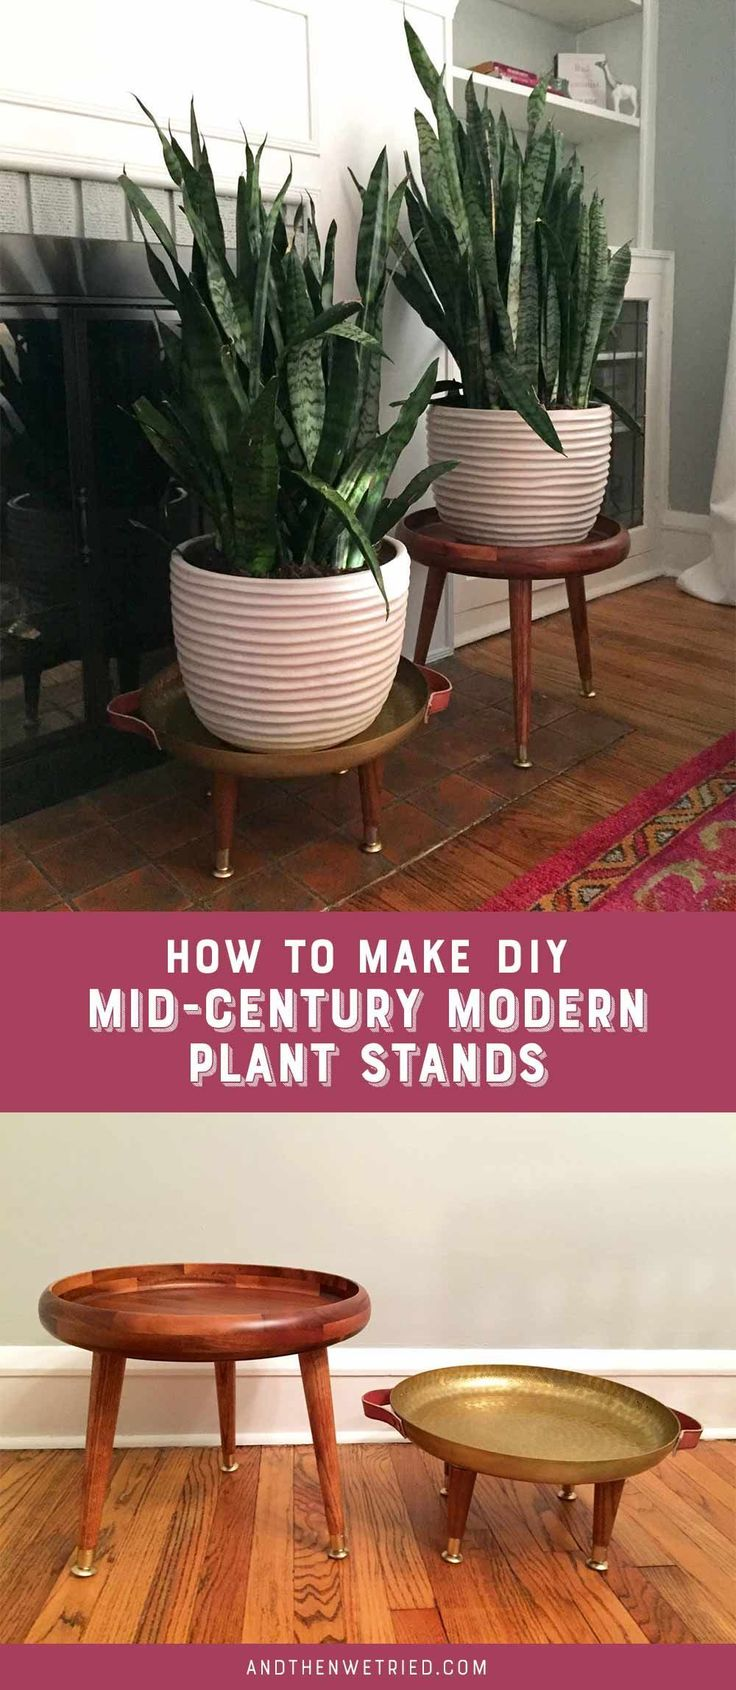 The 25+ best Indoor plant stands ideas on Pinterest | Plant stands ...